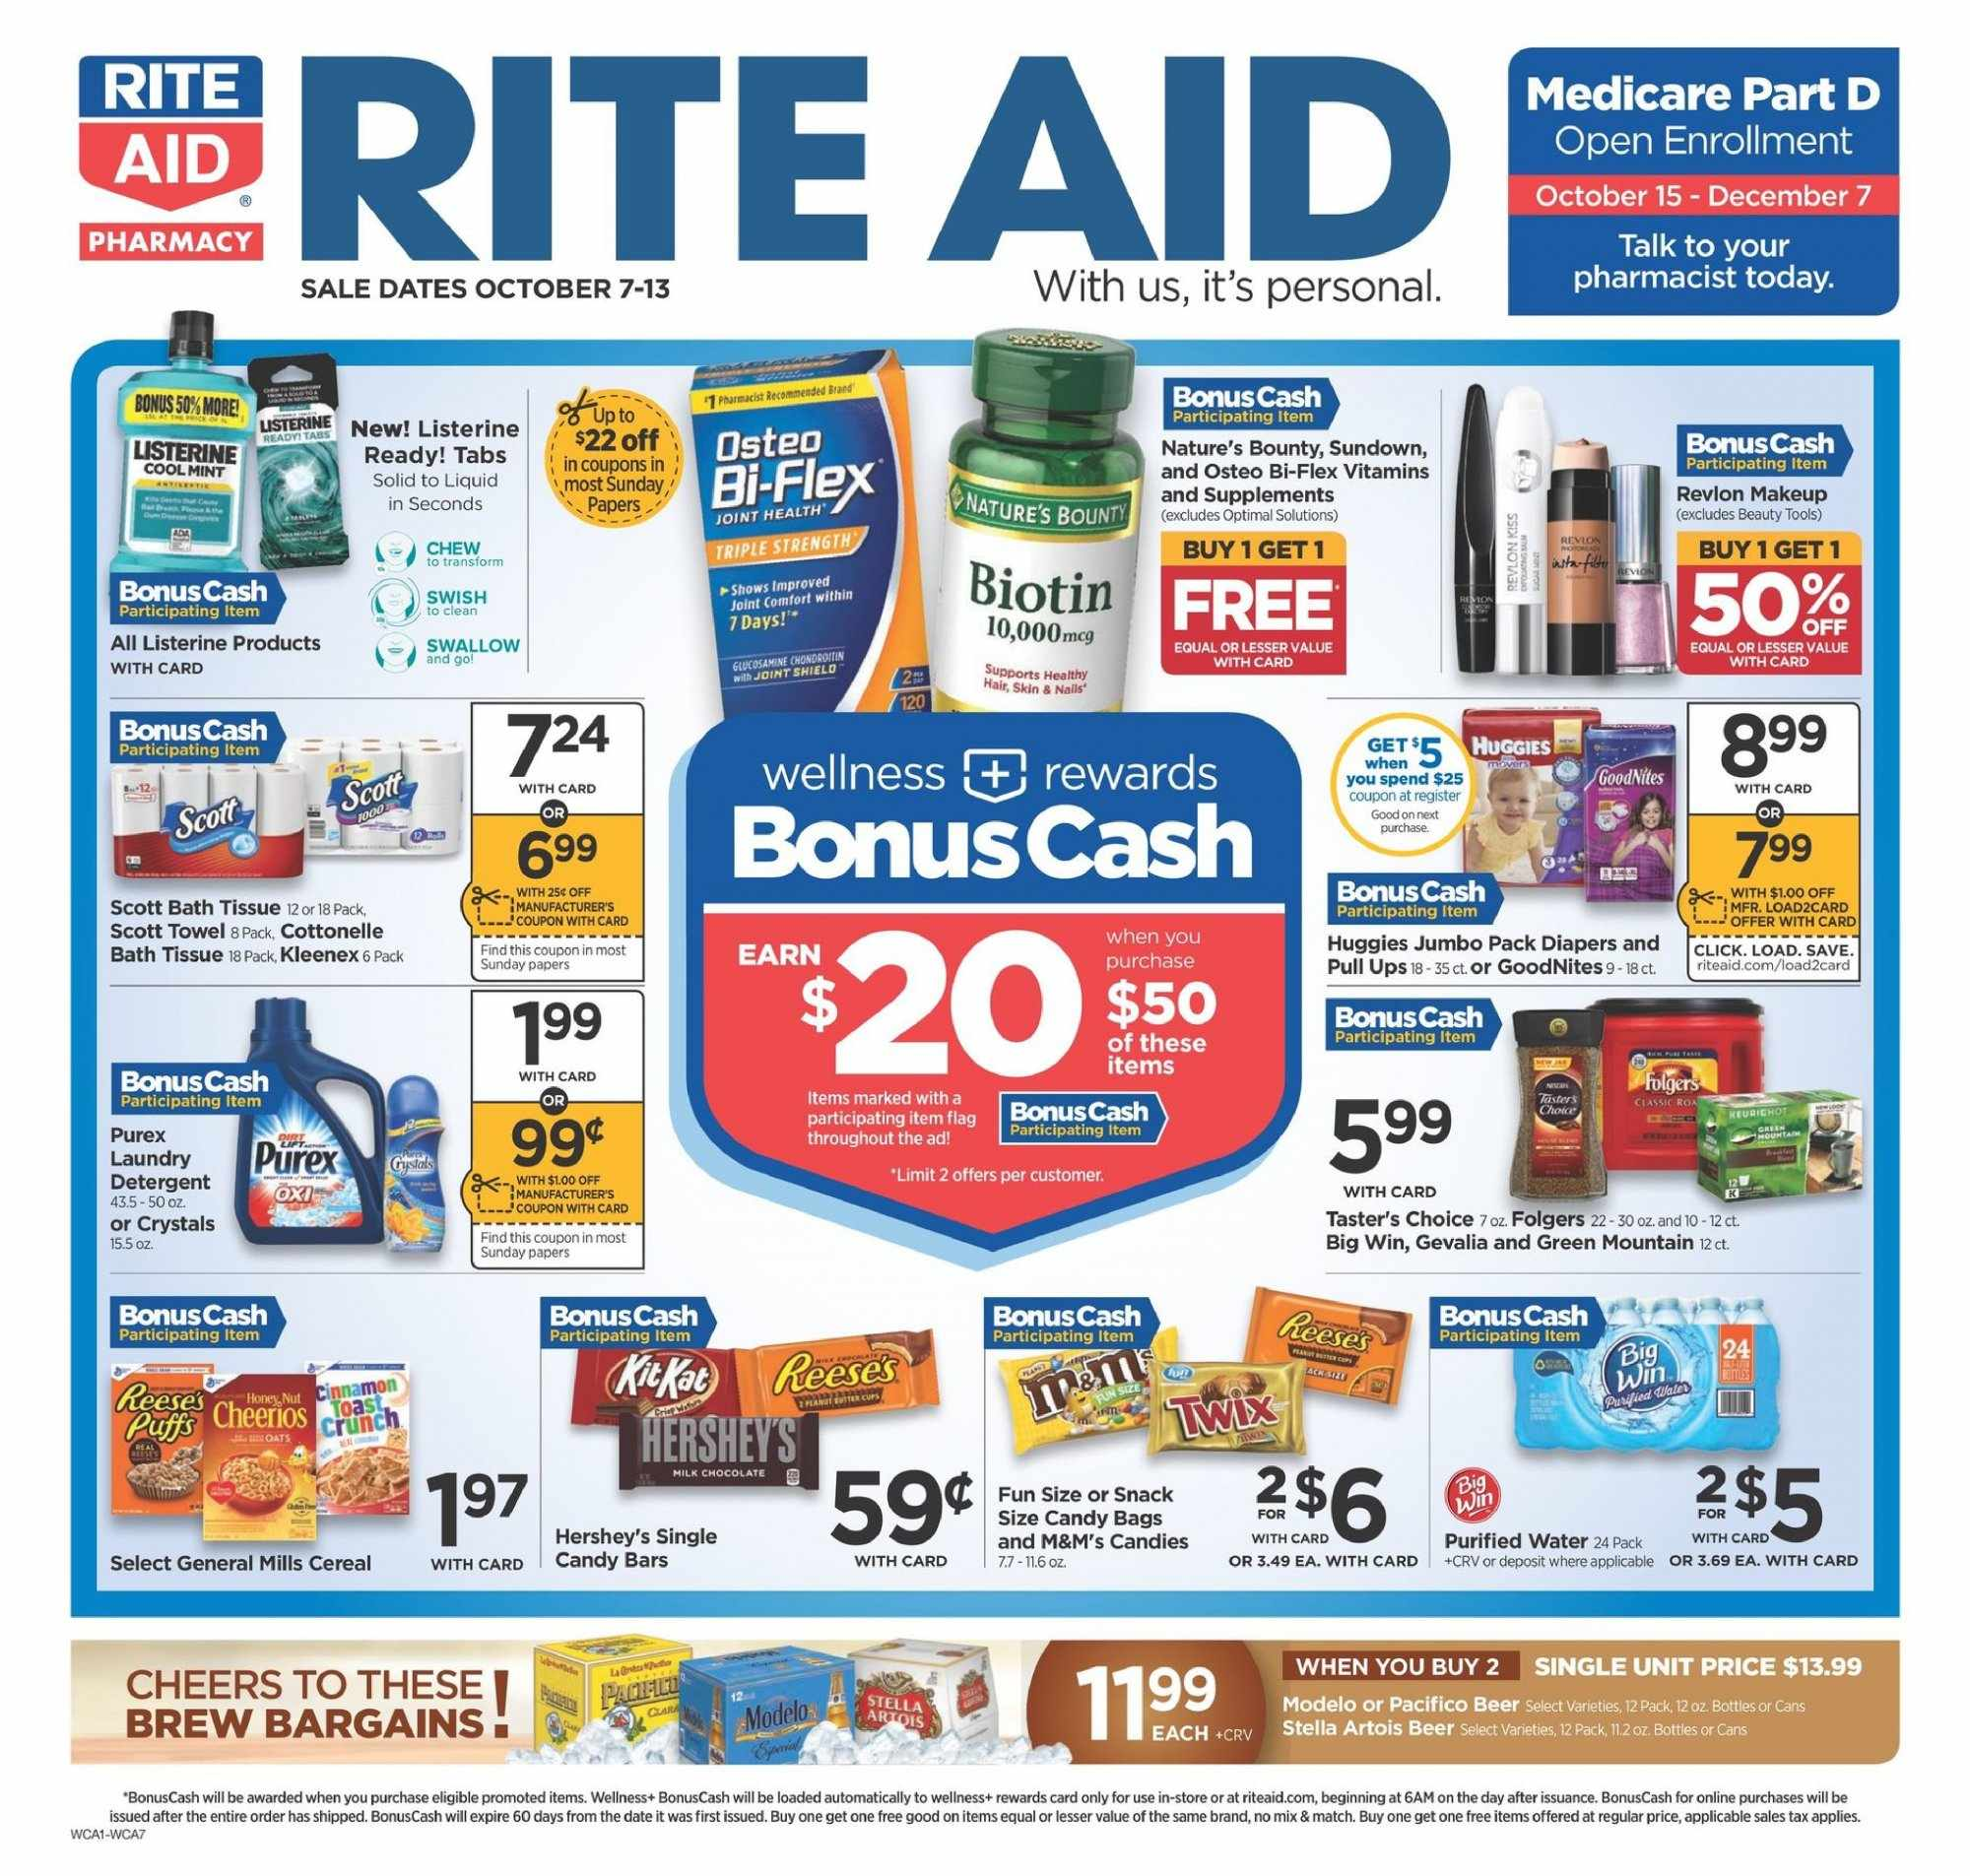 RITE AID Flyer - 10.07.2018 - 10.13.2018 - Sales products - bag, bath, bath tissue, beer, biotin, cottonelle, dates, detergent, kleenex, listerine, makeup, mint, nature's bounty, revlon, scott, shield, solid, stella artois, towel, huggies, oats, osteo bi-flex. Page 1.